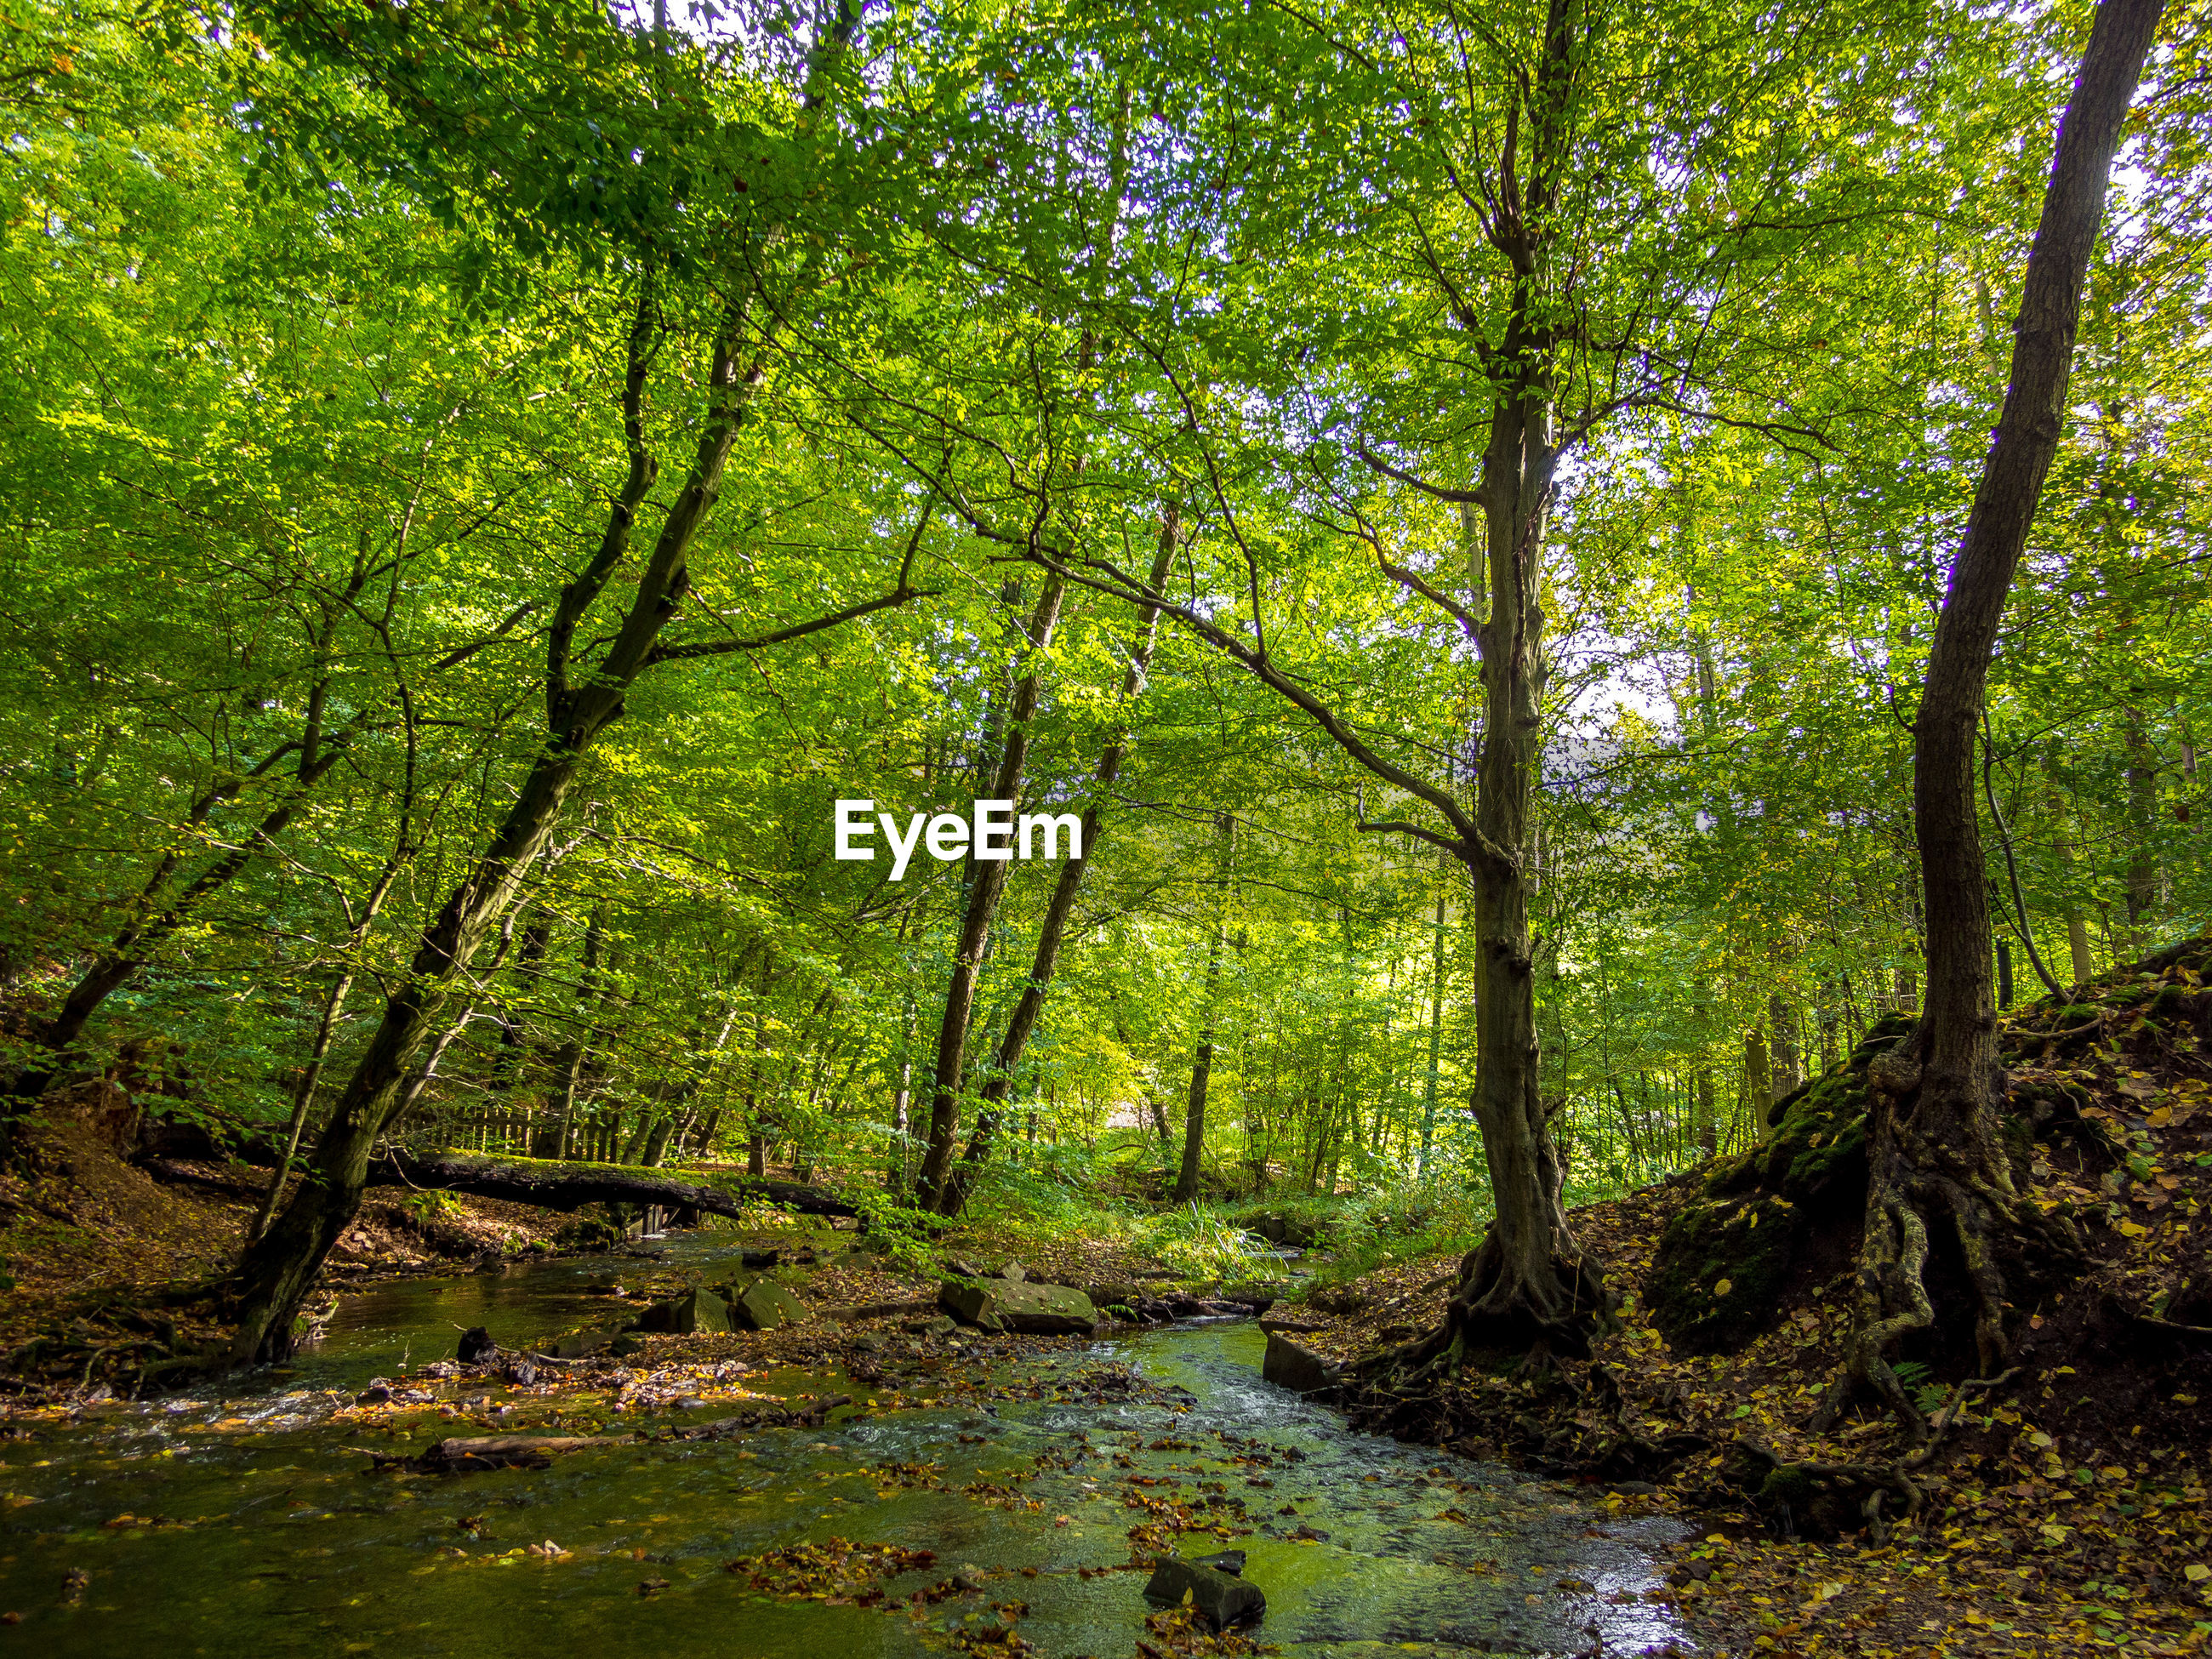 tree, forest, plant, land, water, tranquility, beauty in nature, scenics - nature, nature, woodland, growth, no people, tranquil scene, environment, day, green color, foliage, lush foliage, non-urban scene, outdoors, stream - flowing water, swamp, rainforest, flowing water